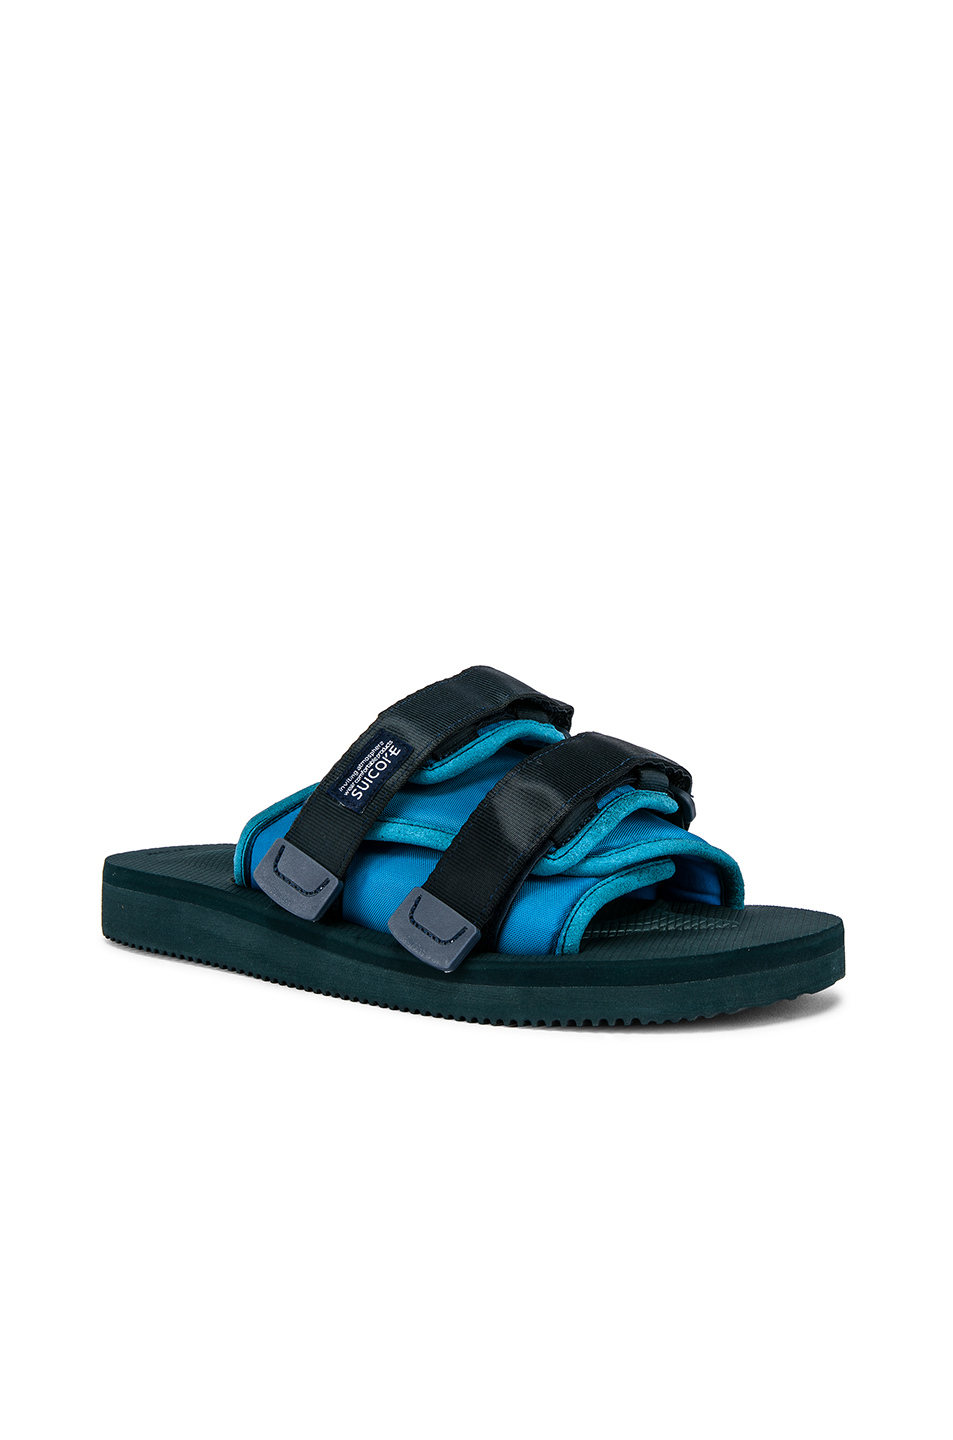 25ce4cd2abc6 Buy Original JOHN ELLIOTT x Suicoke Sandal at Indonesia